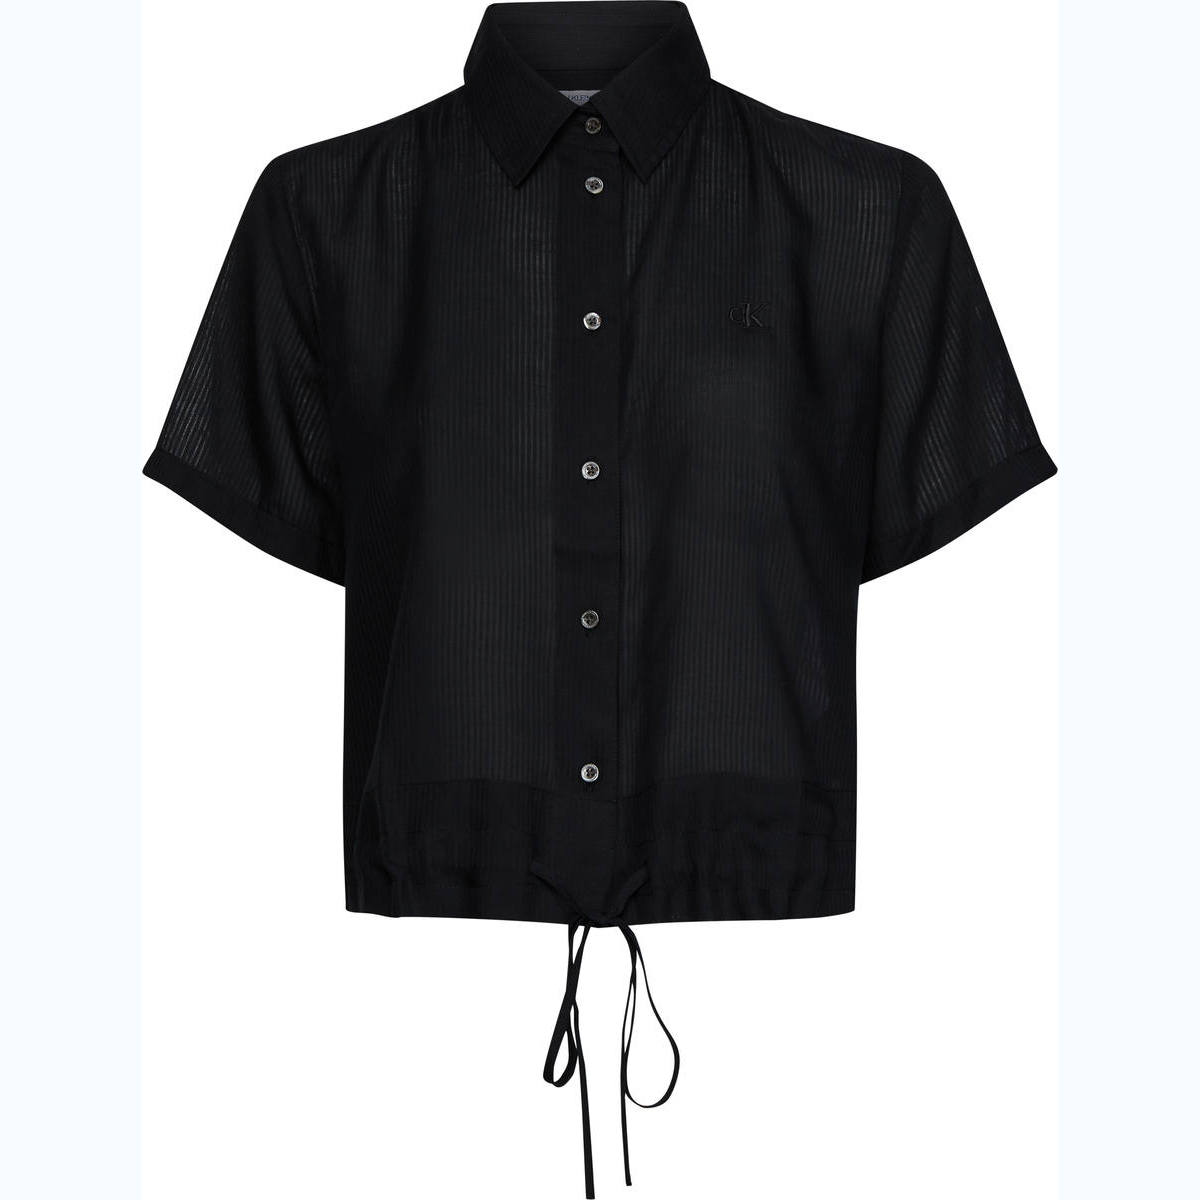 WAISTED LACING SS SHIRT